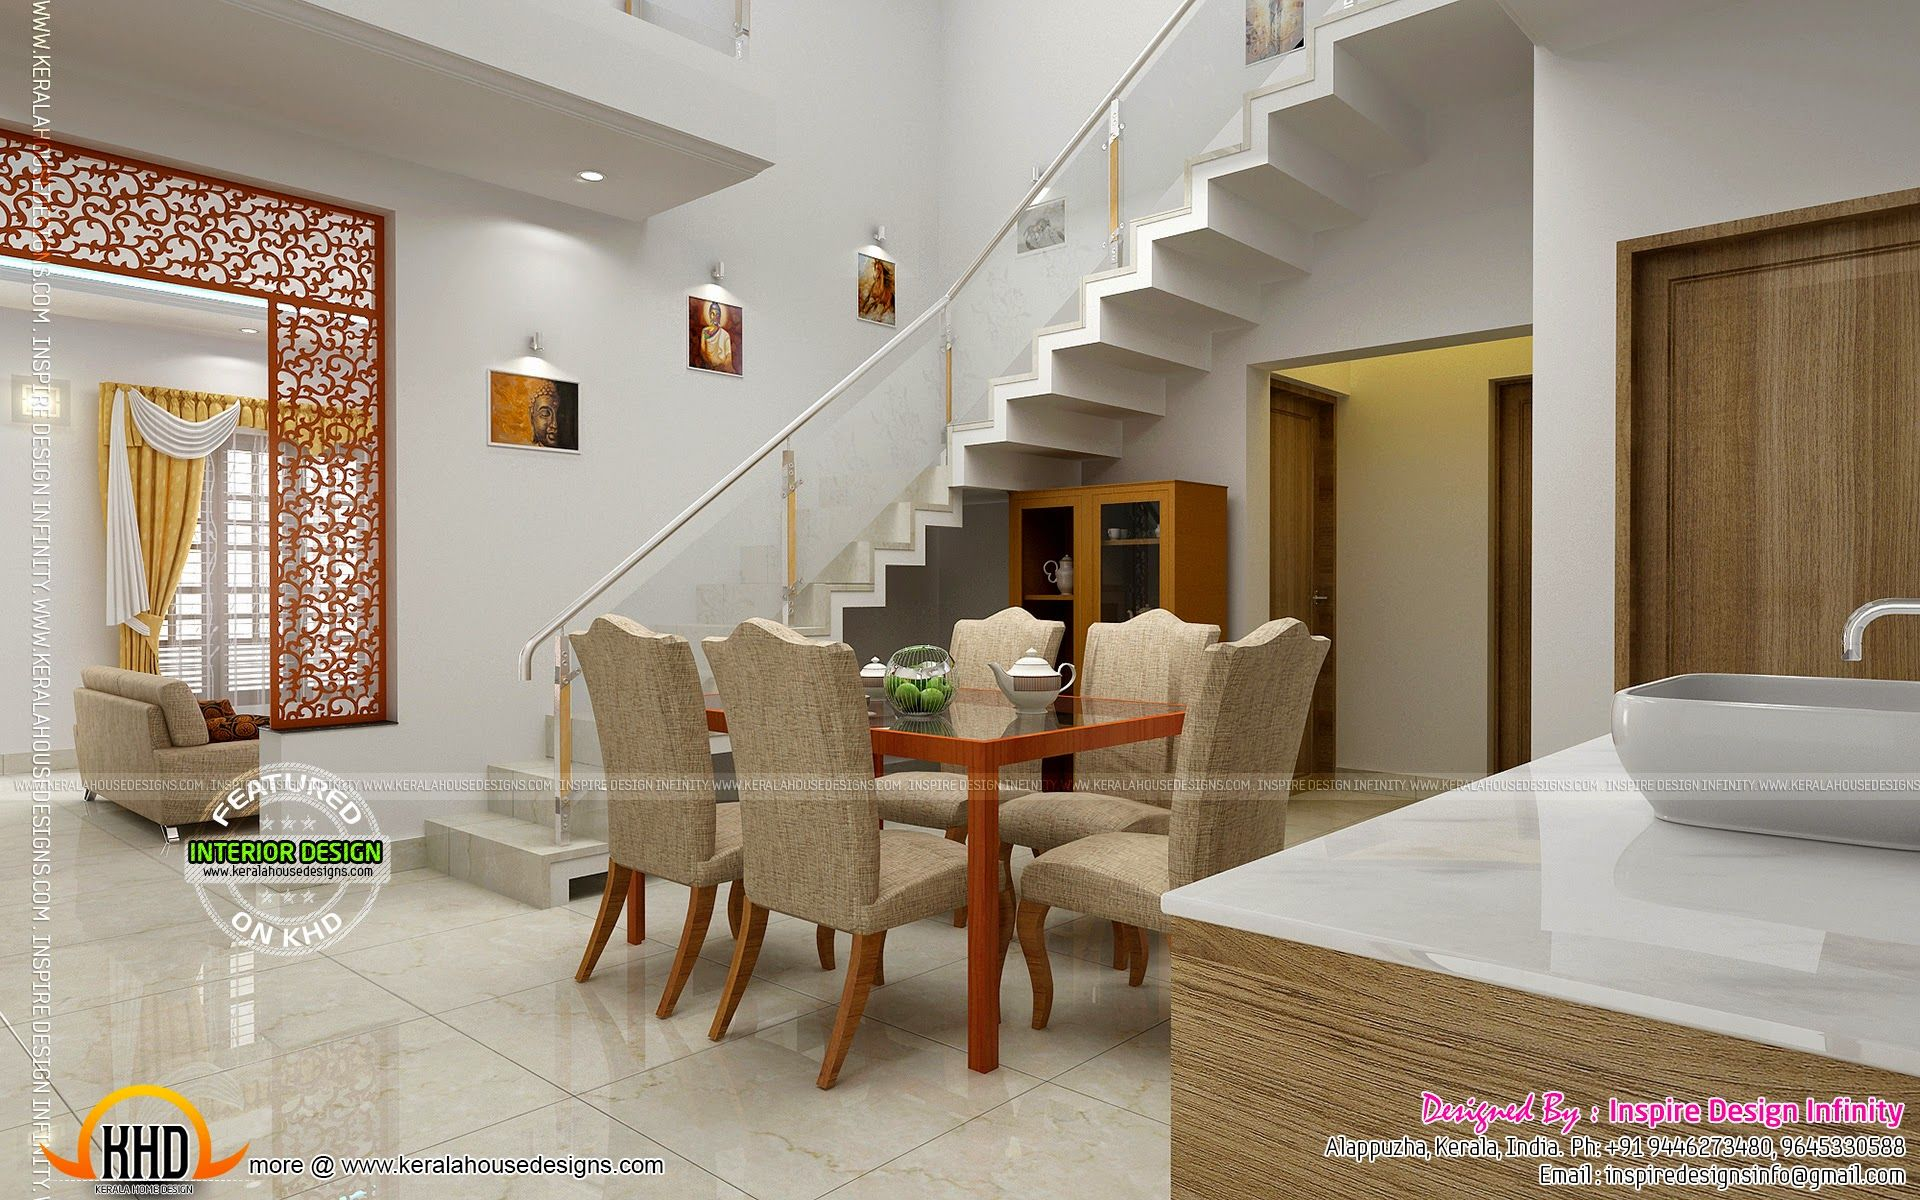 Dining Room Designs Kerala Home Design And Floor Plans Interior Design Dining Interior Design Dining Room Dining Interior